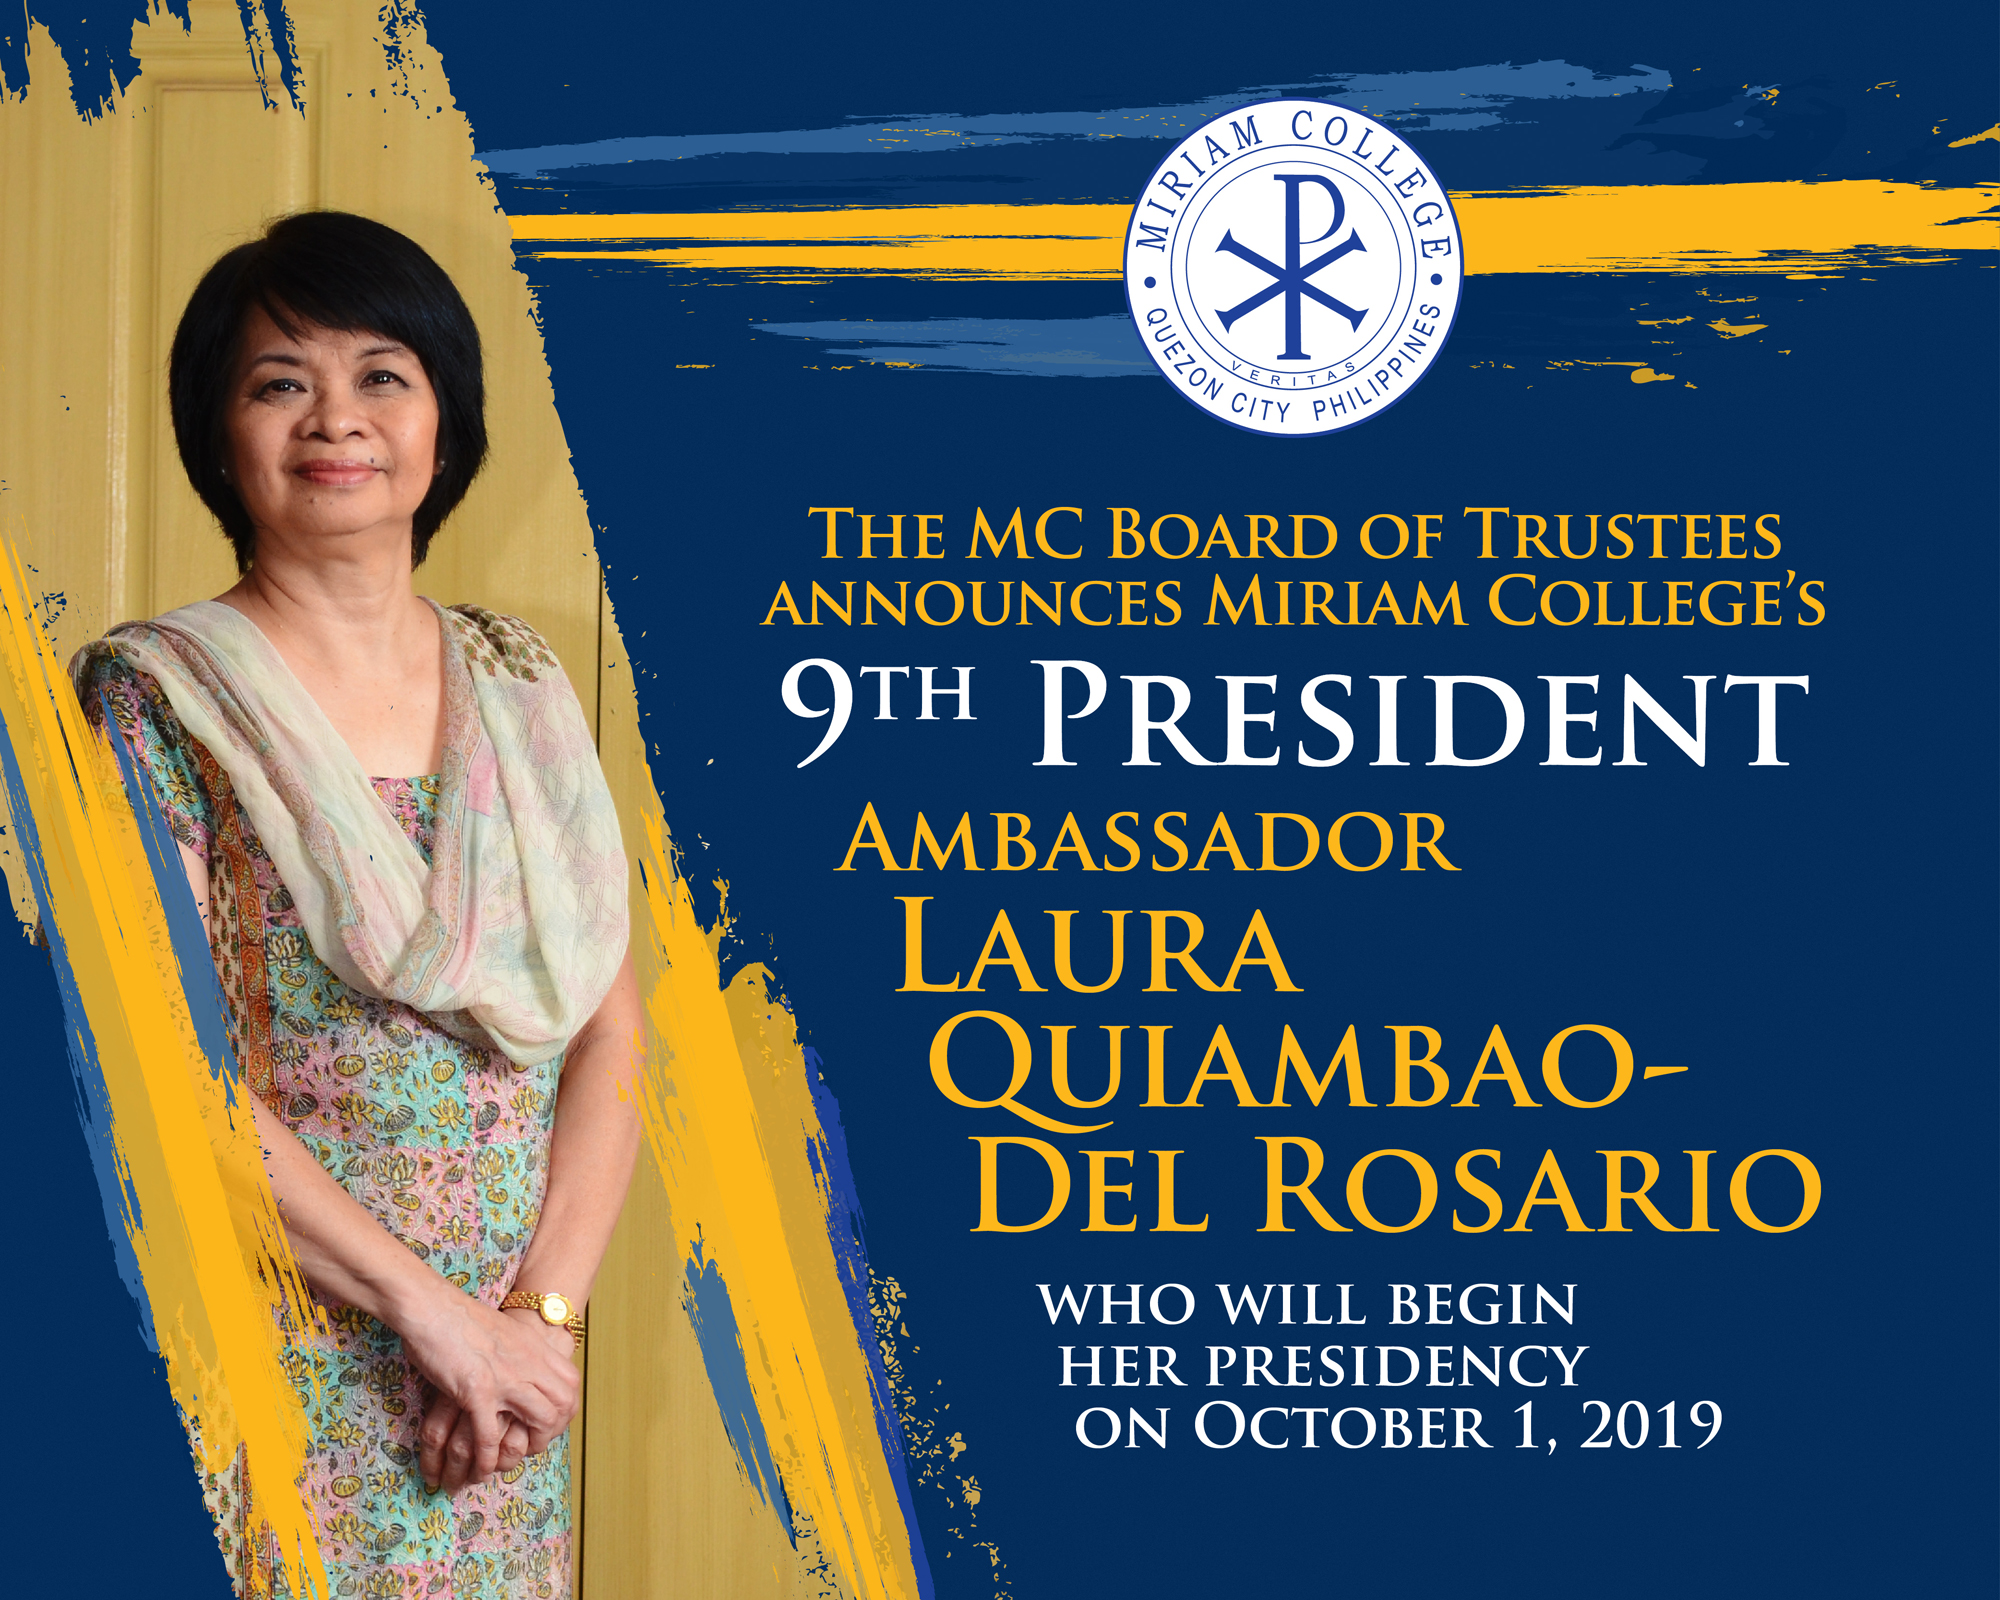 Miriam College's 9th President begins her term on October 1, 2019